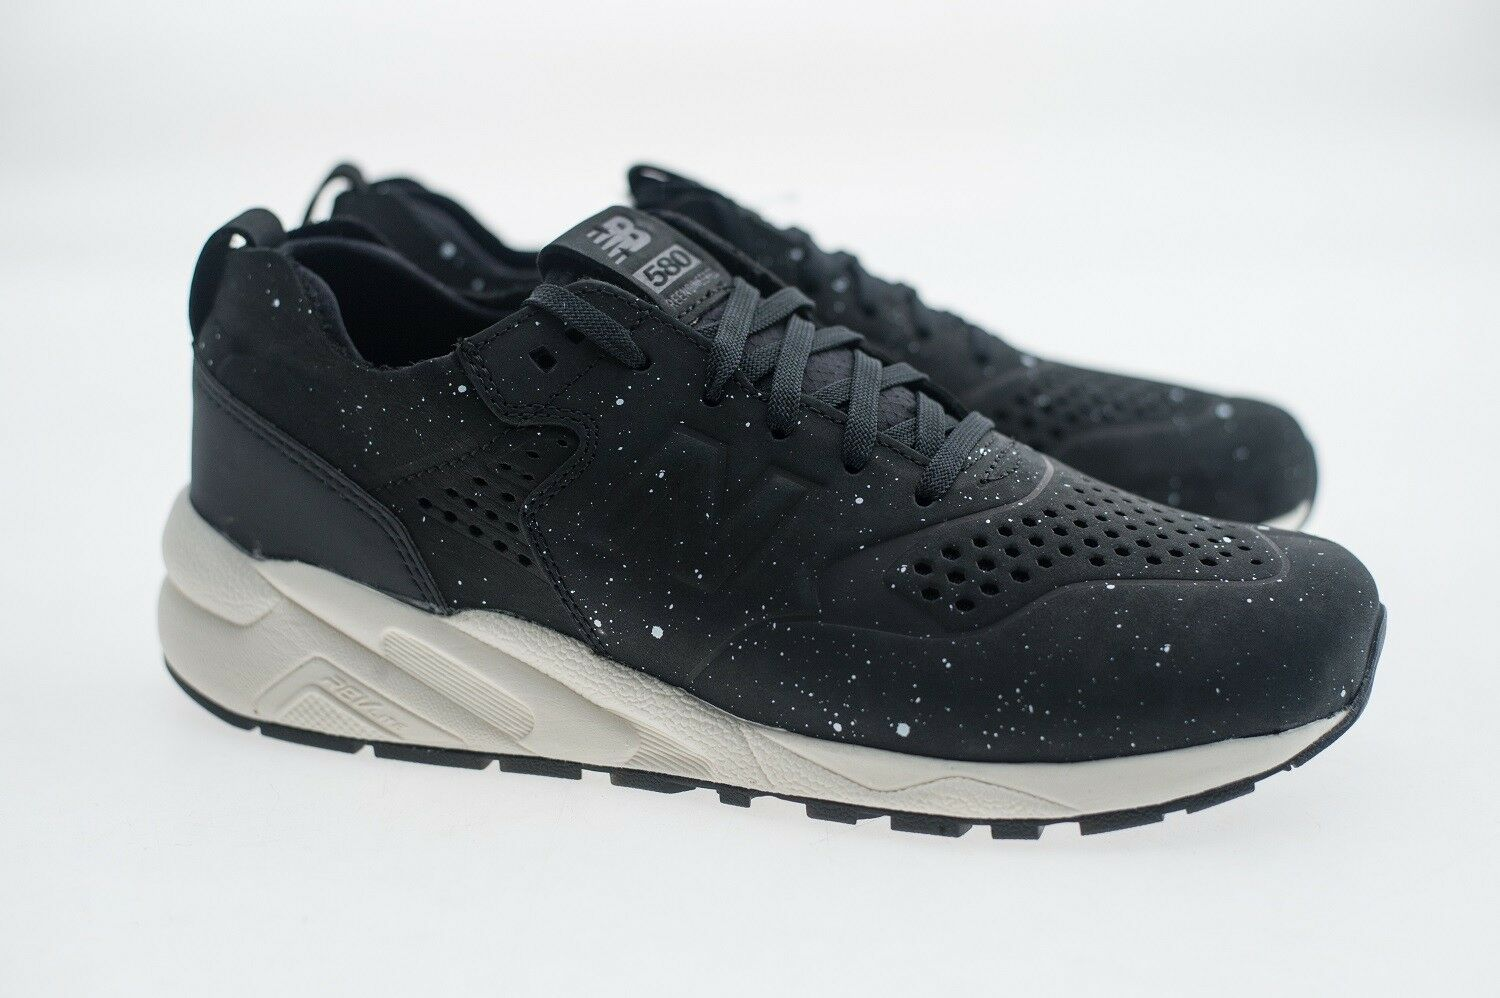 New Balance x Hypebeast Men MRT 580 Classic - Earth And Space Pack (black) MRT58